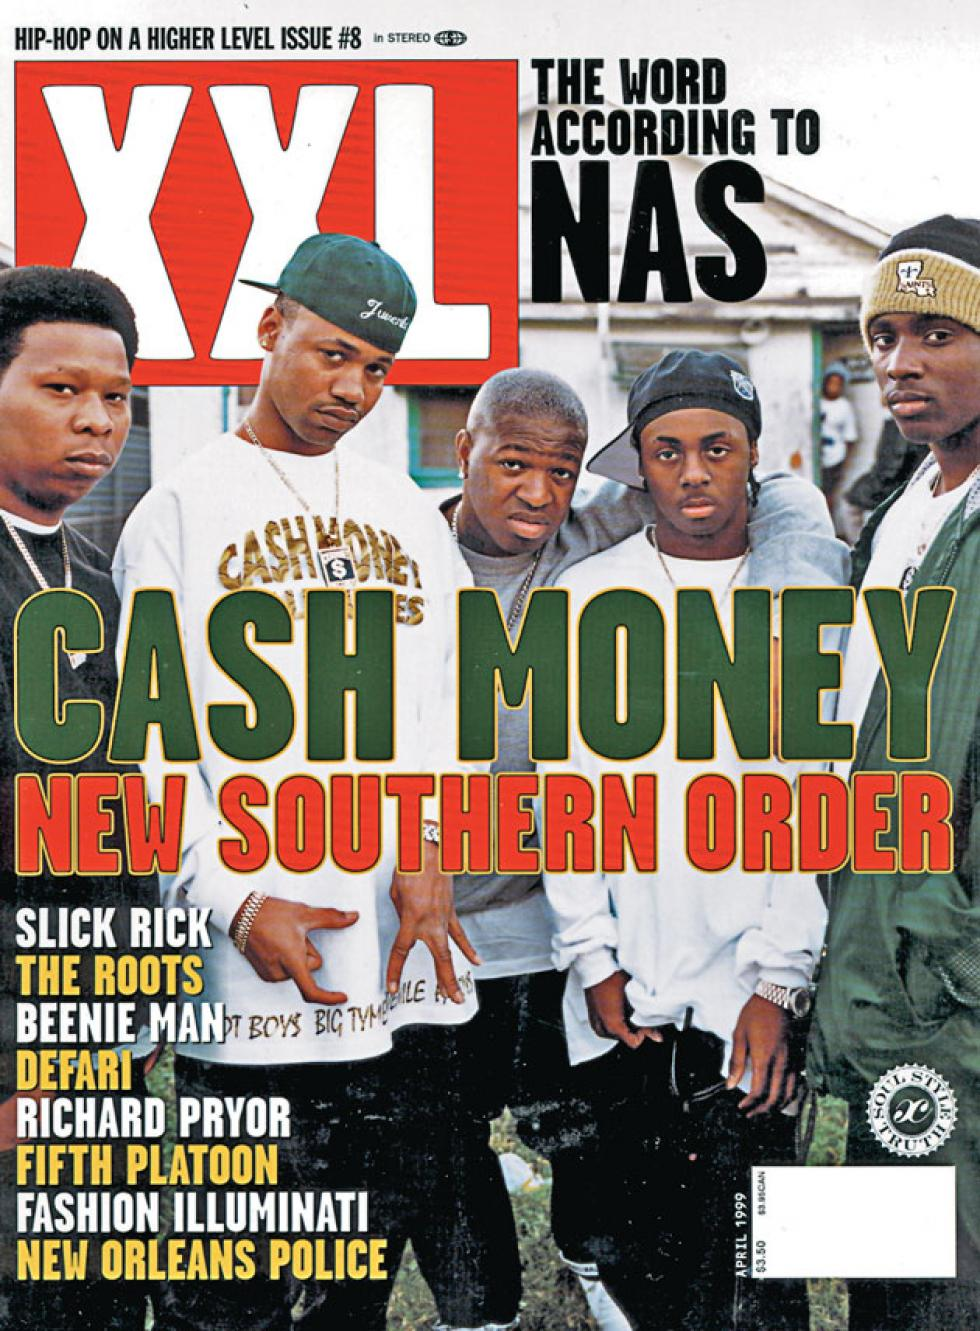 DAR Hip Hop: 10 Classic Hip Hop Magazine Covers ...